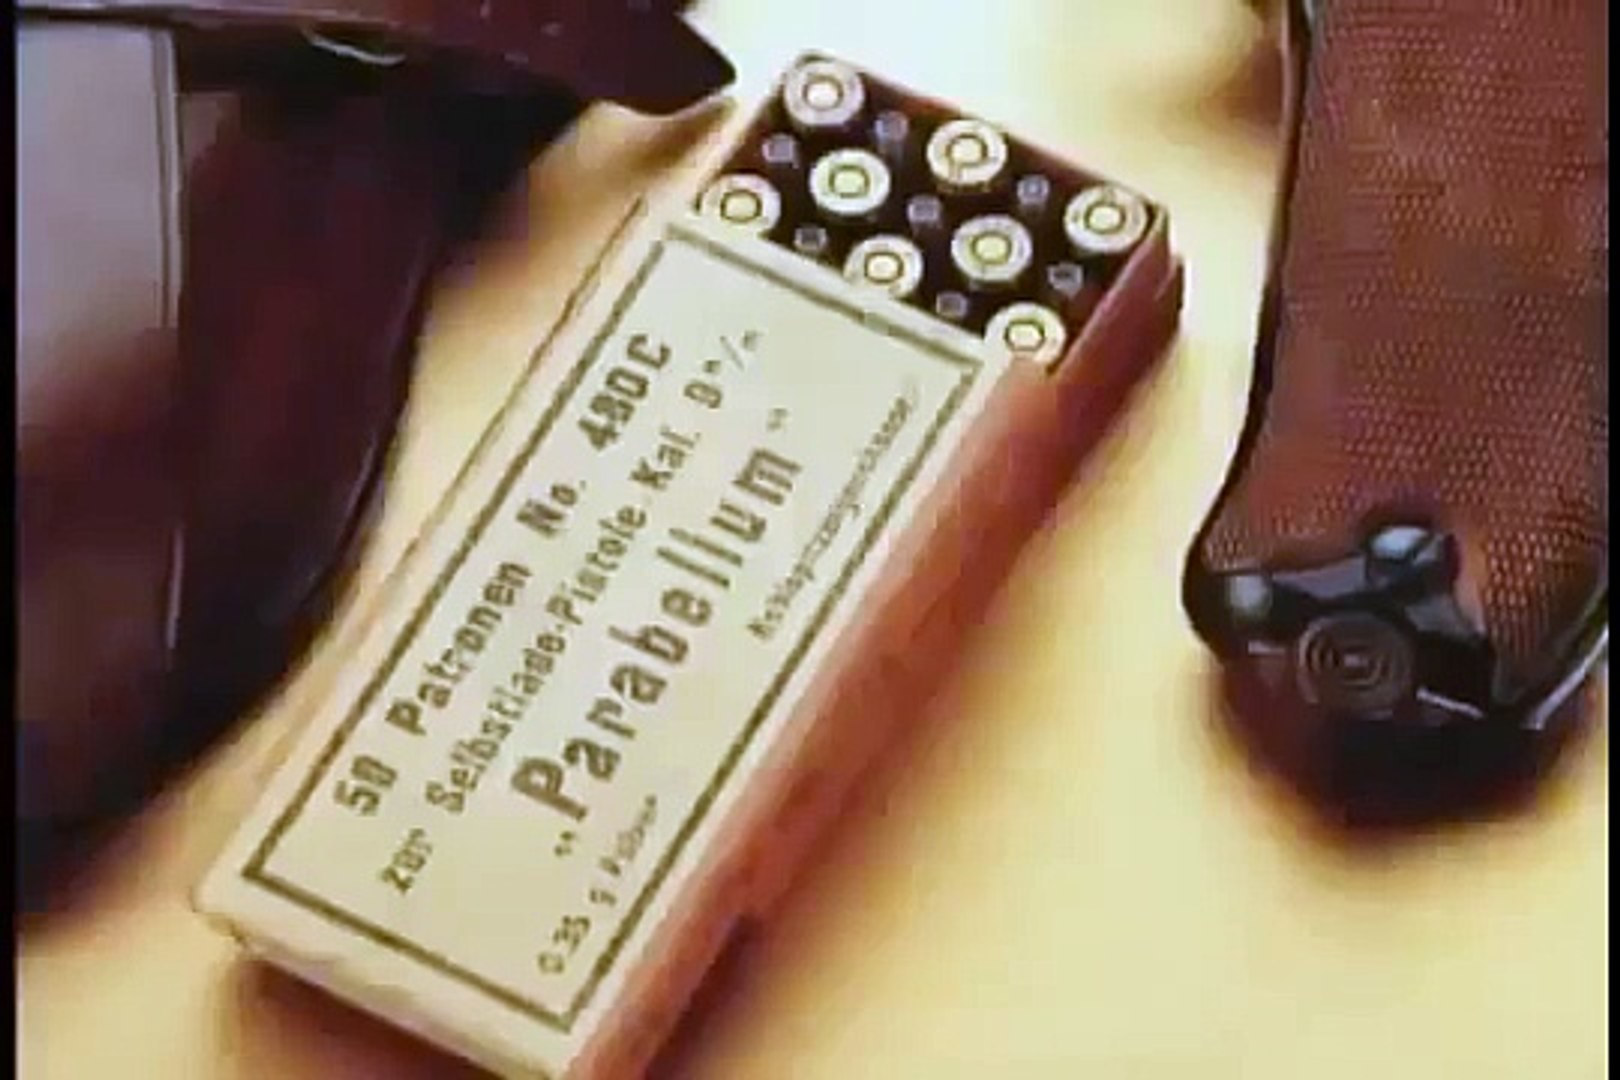 TALES OF THE GUN - THE LUGER - Discovery History Military (full documentary)